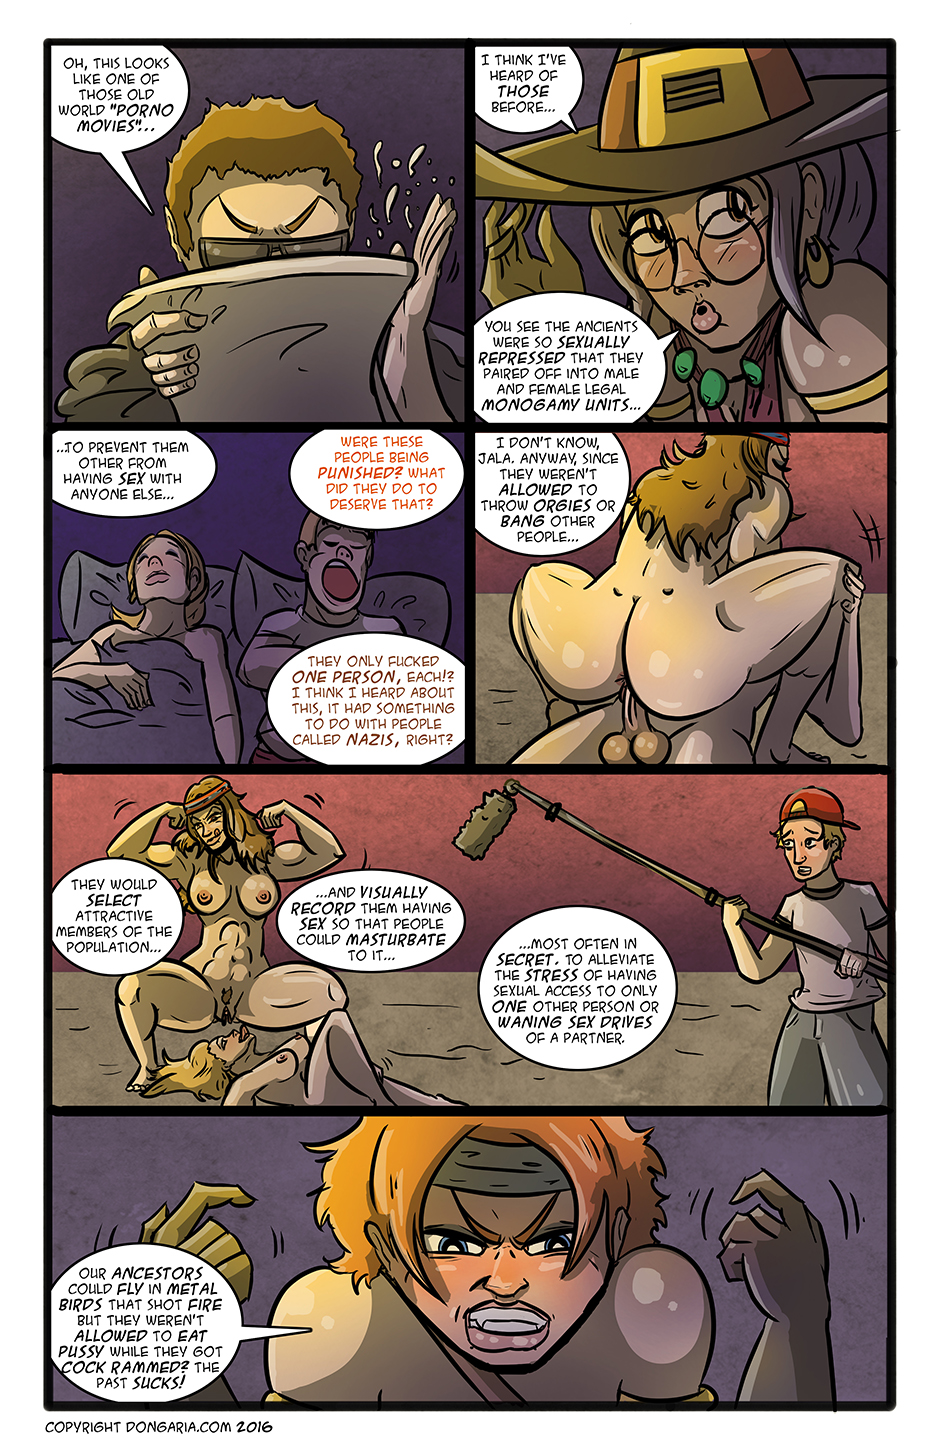 Babes of Dongaria Chapter 3 Page 8: The Horrible Past